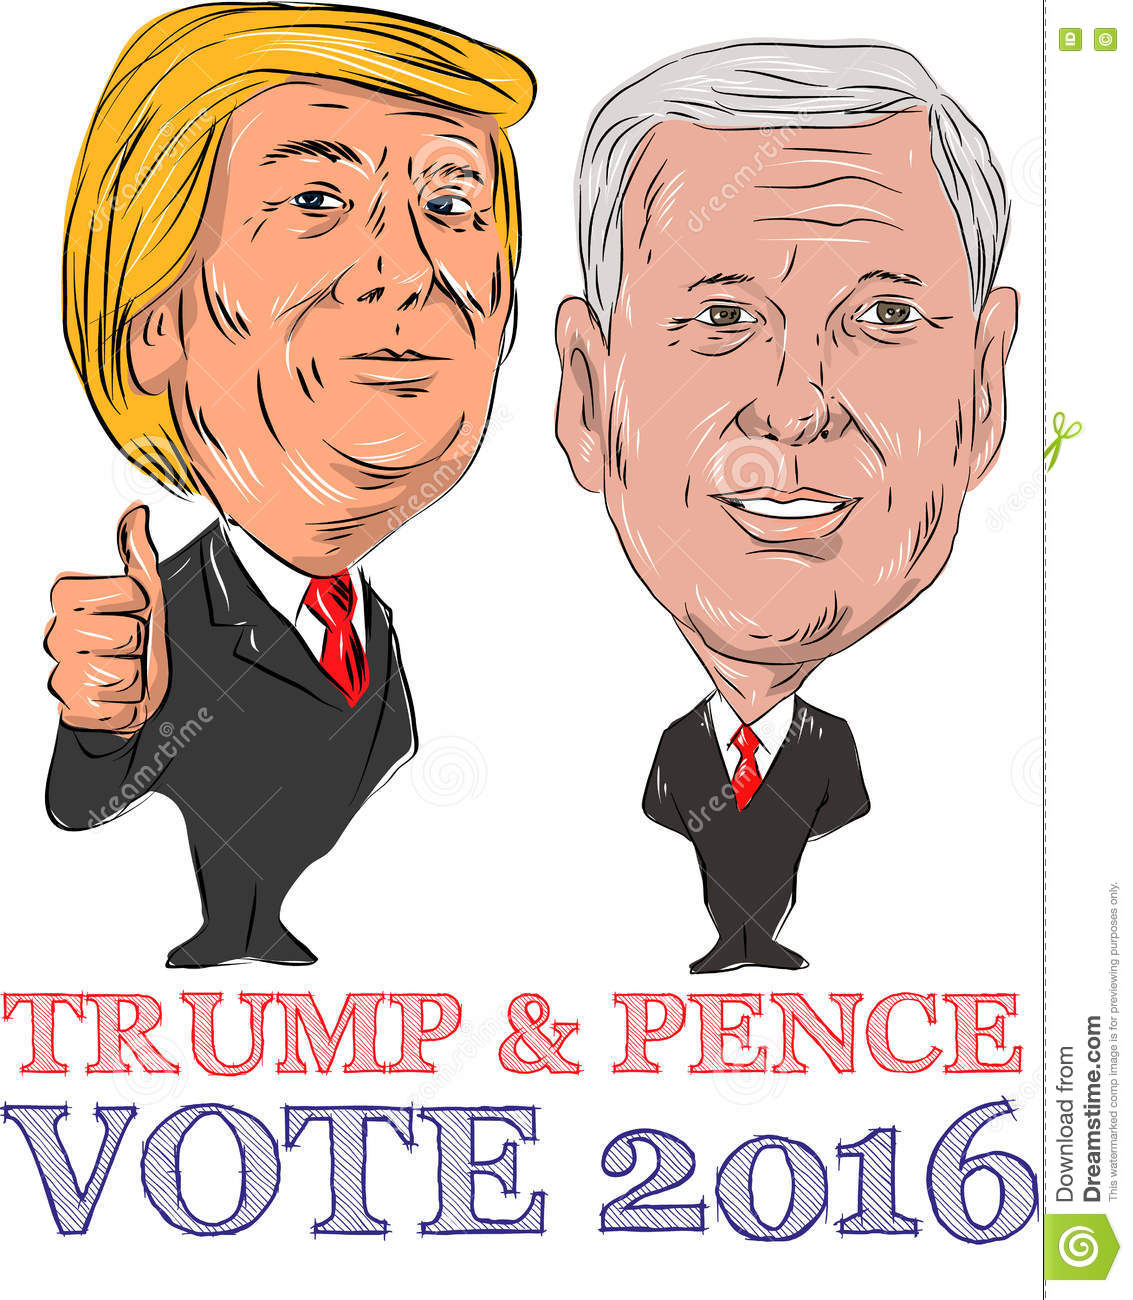 trump and pence vote 2016 editorial photo illustration of candidate